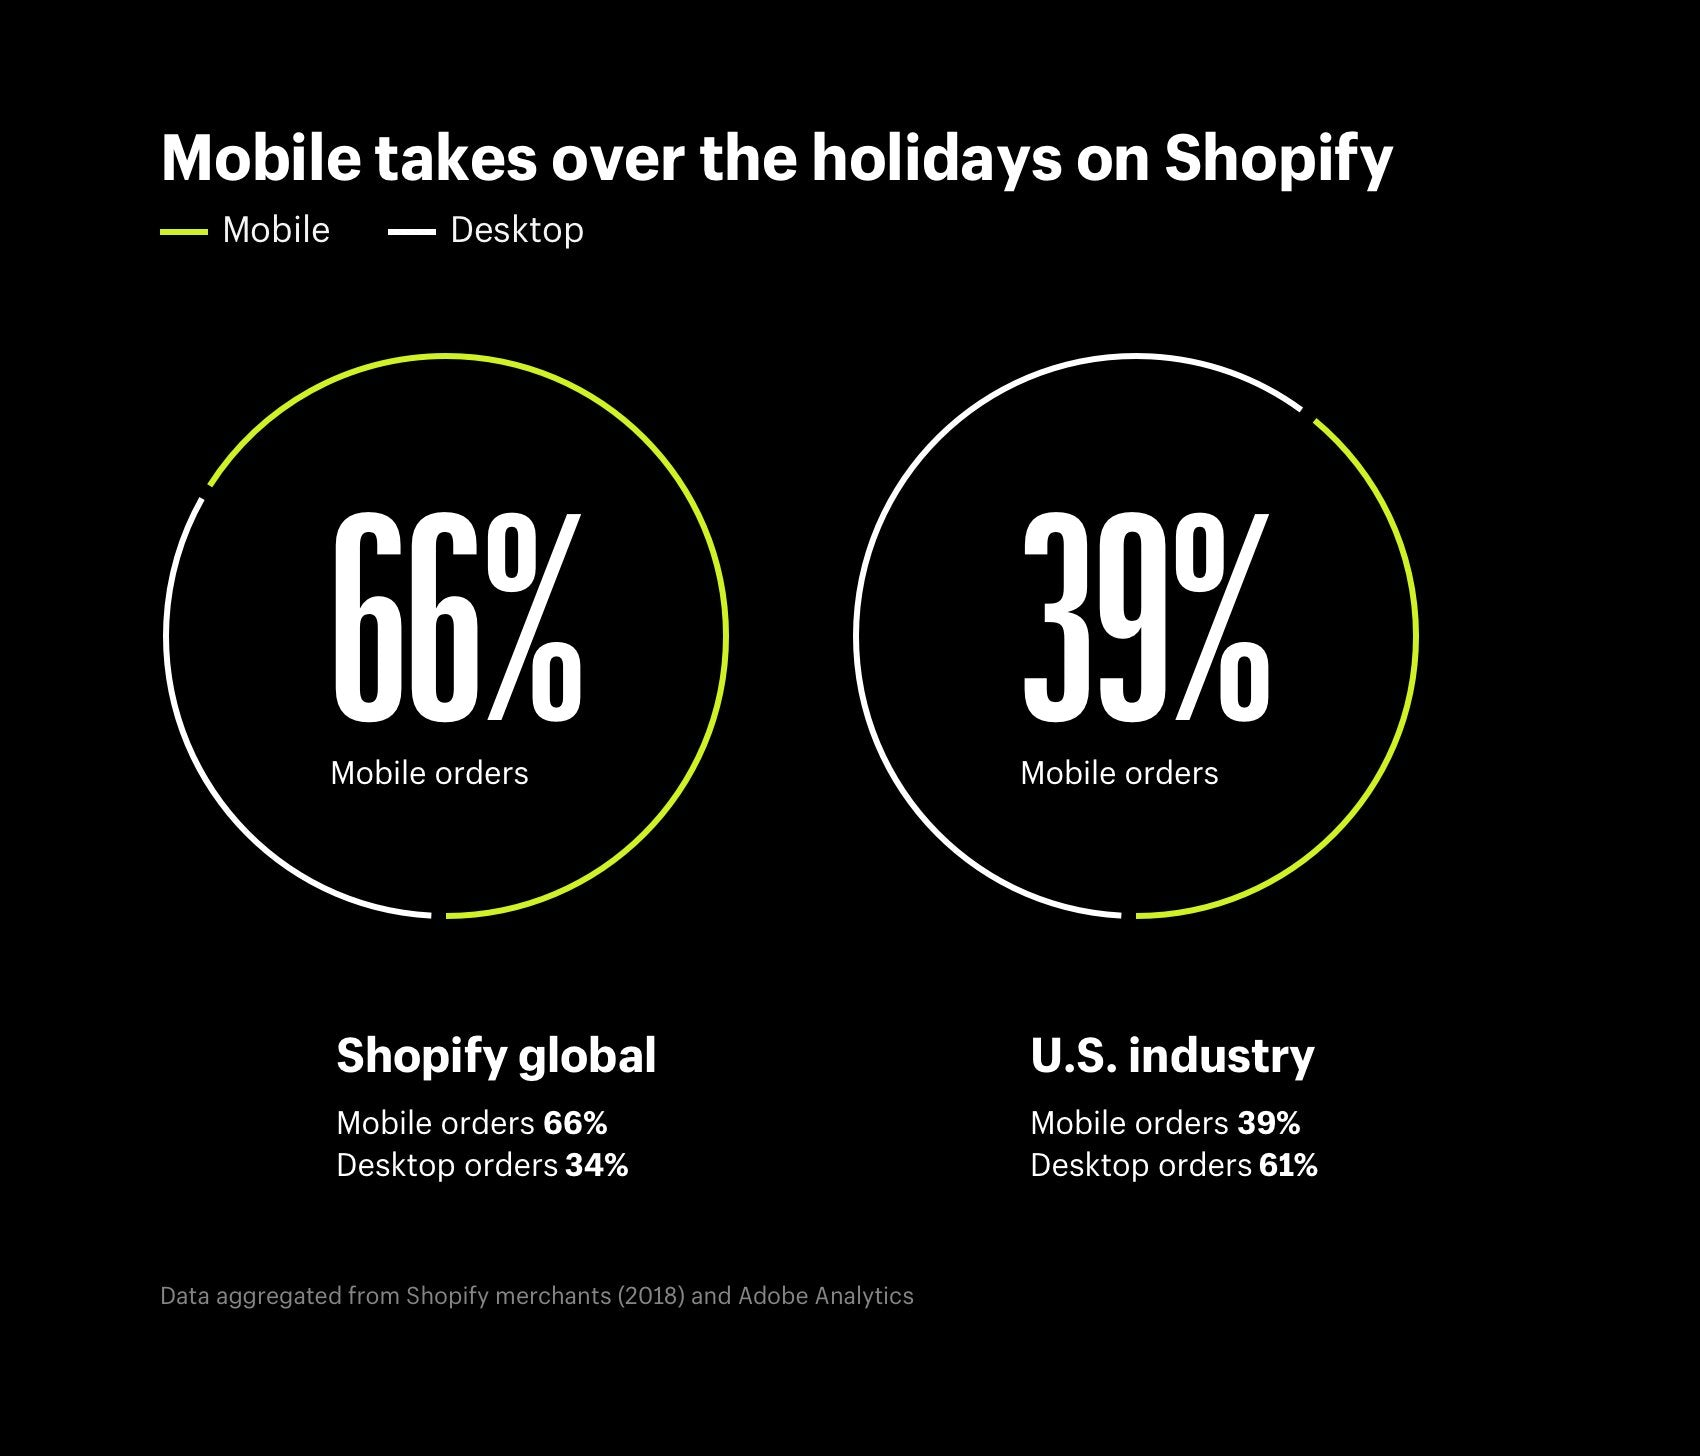 Mobile takes over the holidays on Shopify - On Shopify global, 66% of orders were placed on mobile and 34% on desktop. In the U.S. industry, only 39% of orders were placed on mobile, and 61% on desktop.